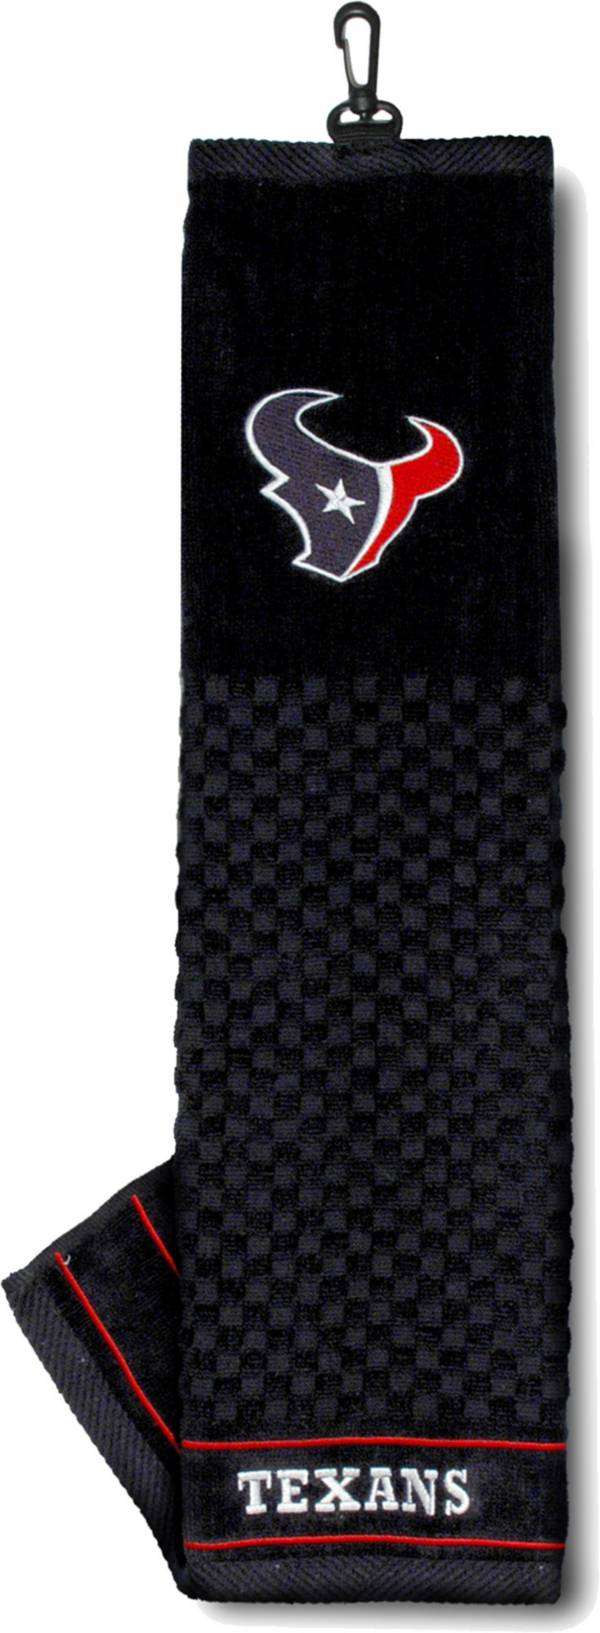 Team Golf Houston Texans Embroidered Towel product image